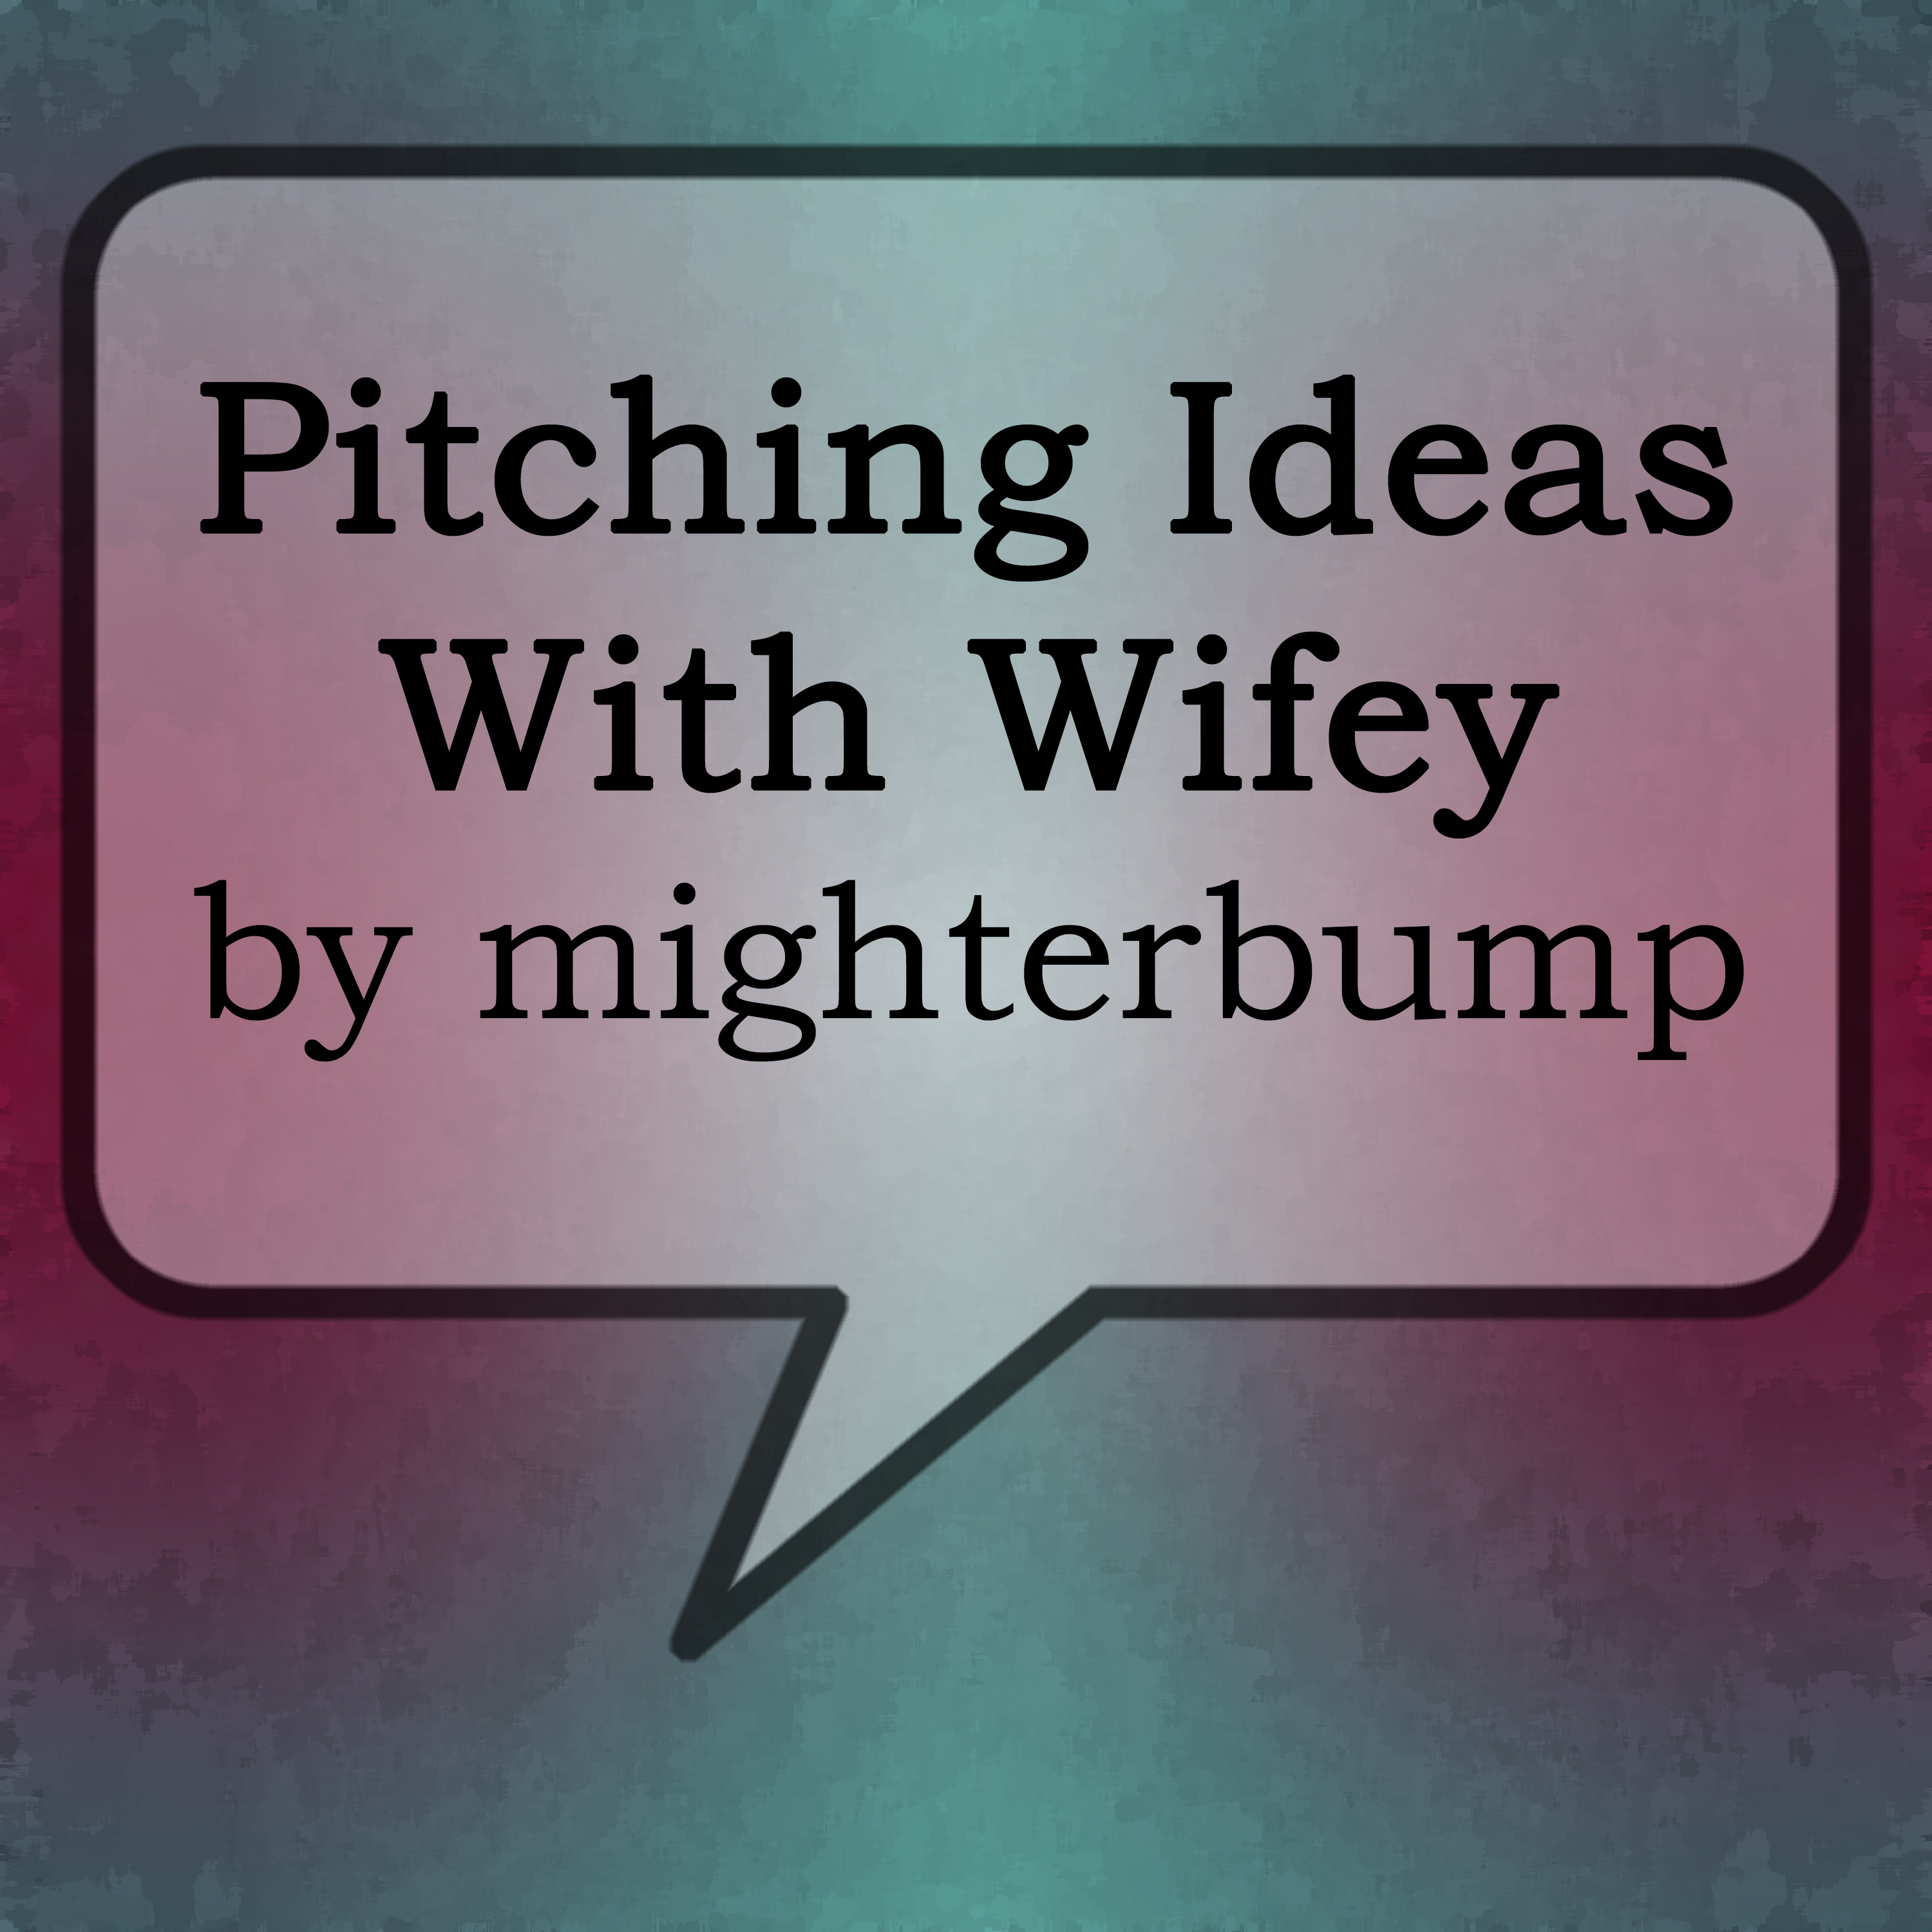 Pitching ideas with Wifey